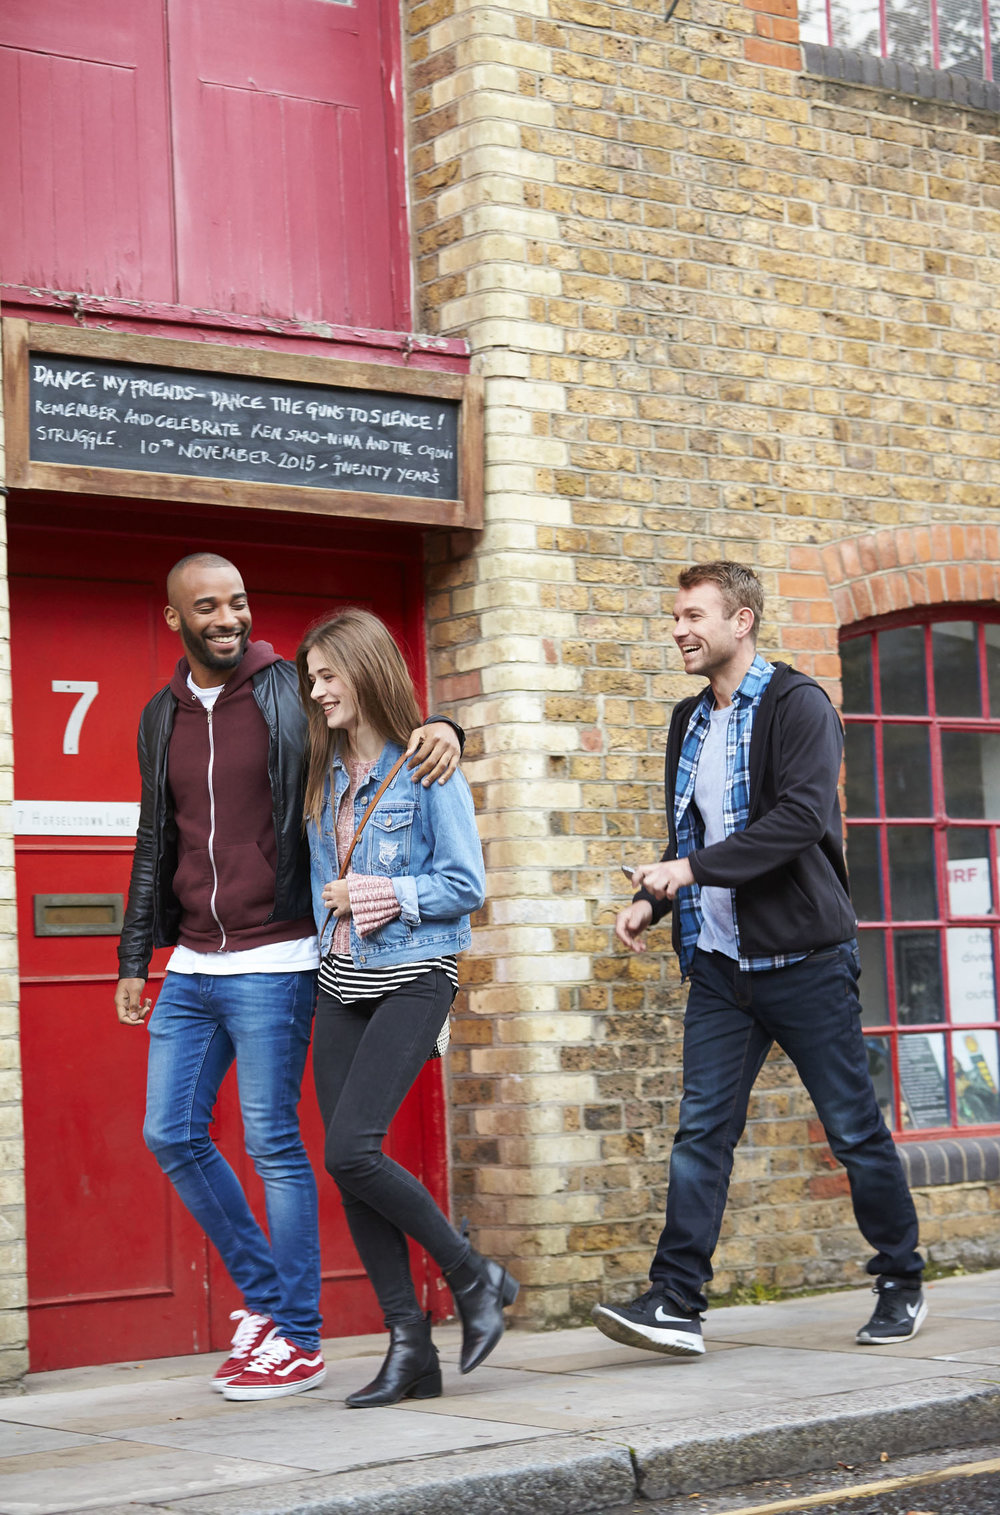 HPTCOR15040_LONDON_STREET_MILLENNIALS_0134.jpg